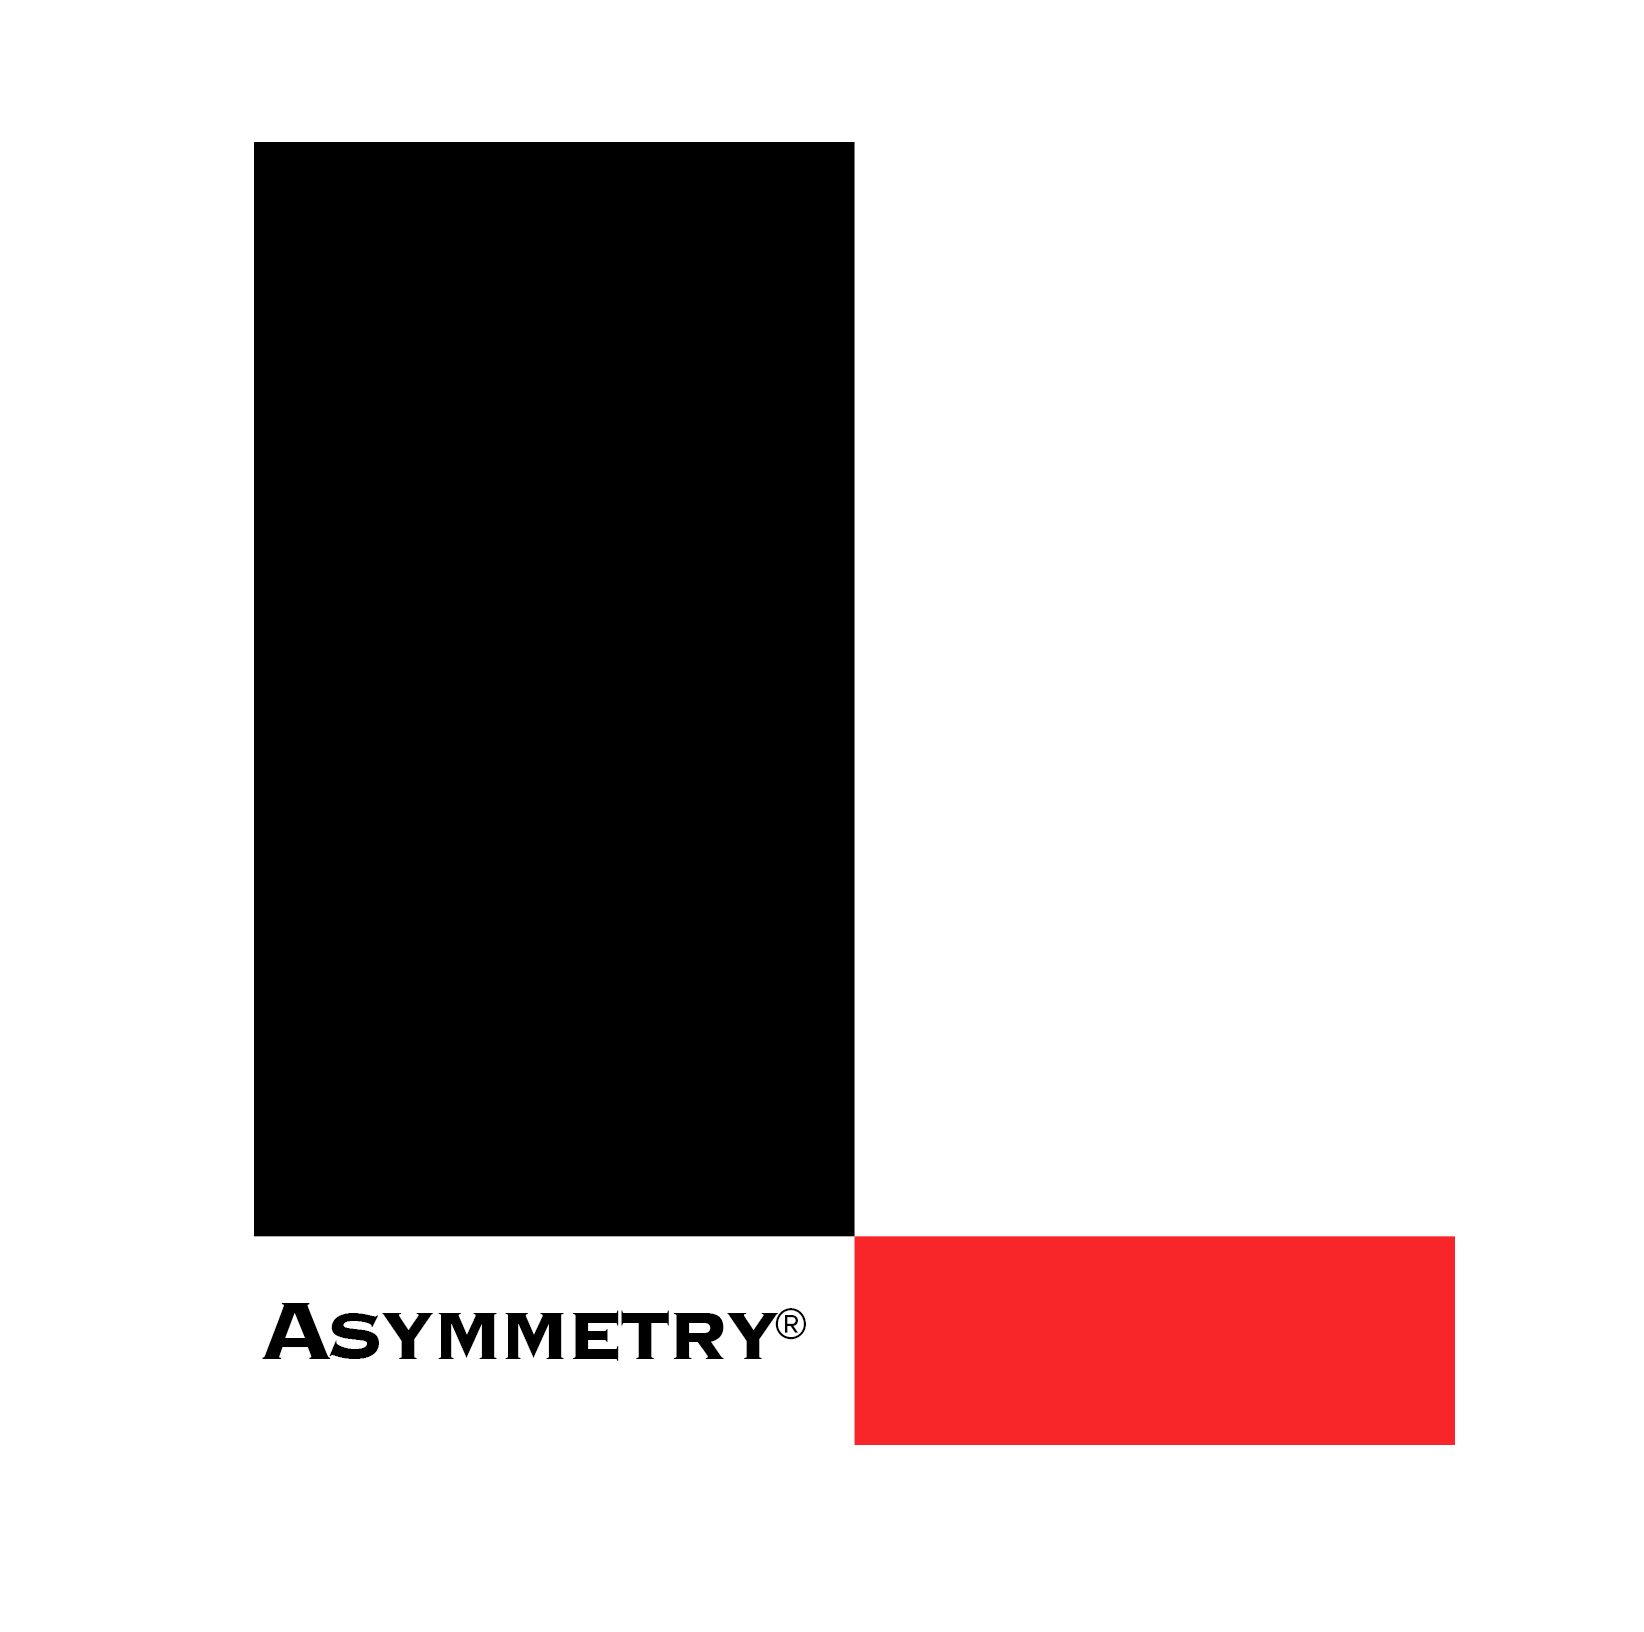 ASYMMETRY® Observations | ASYMMETRY® Observations are Mike